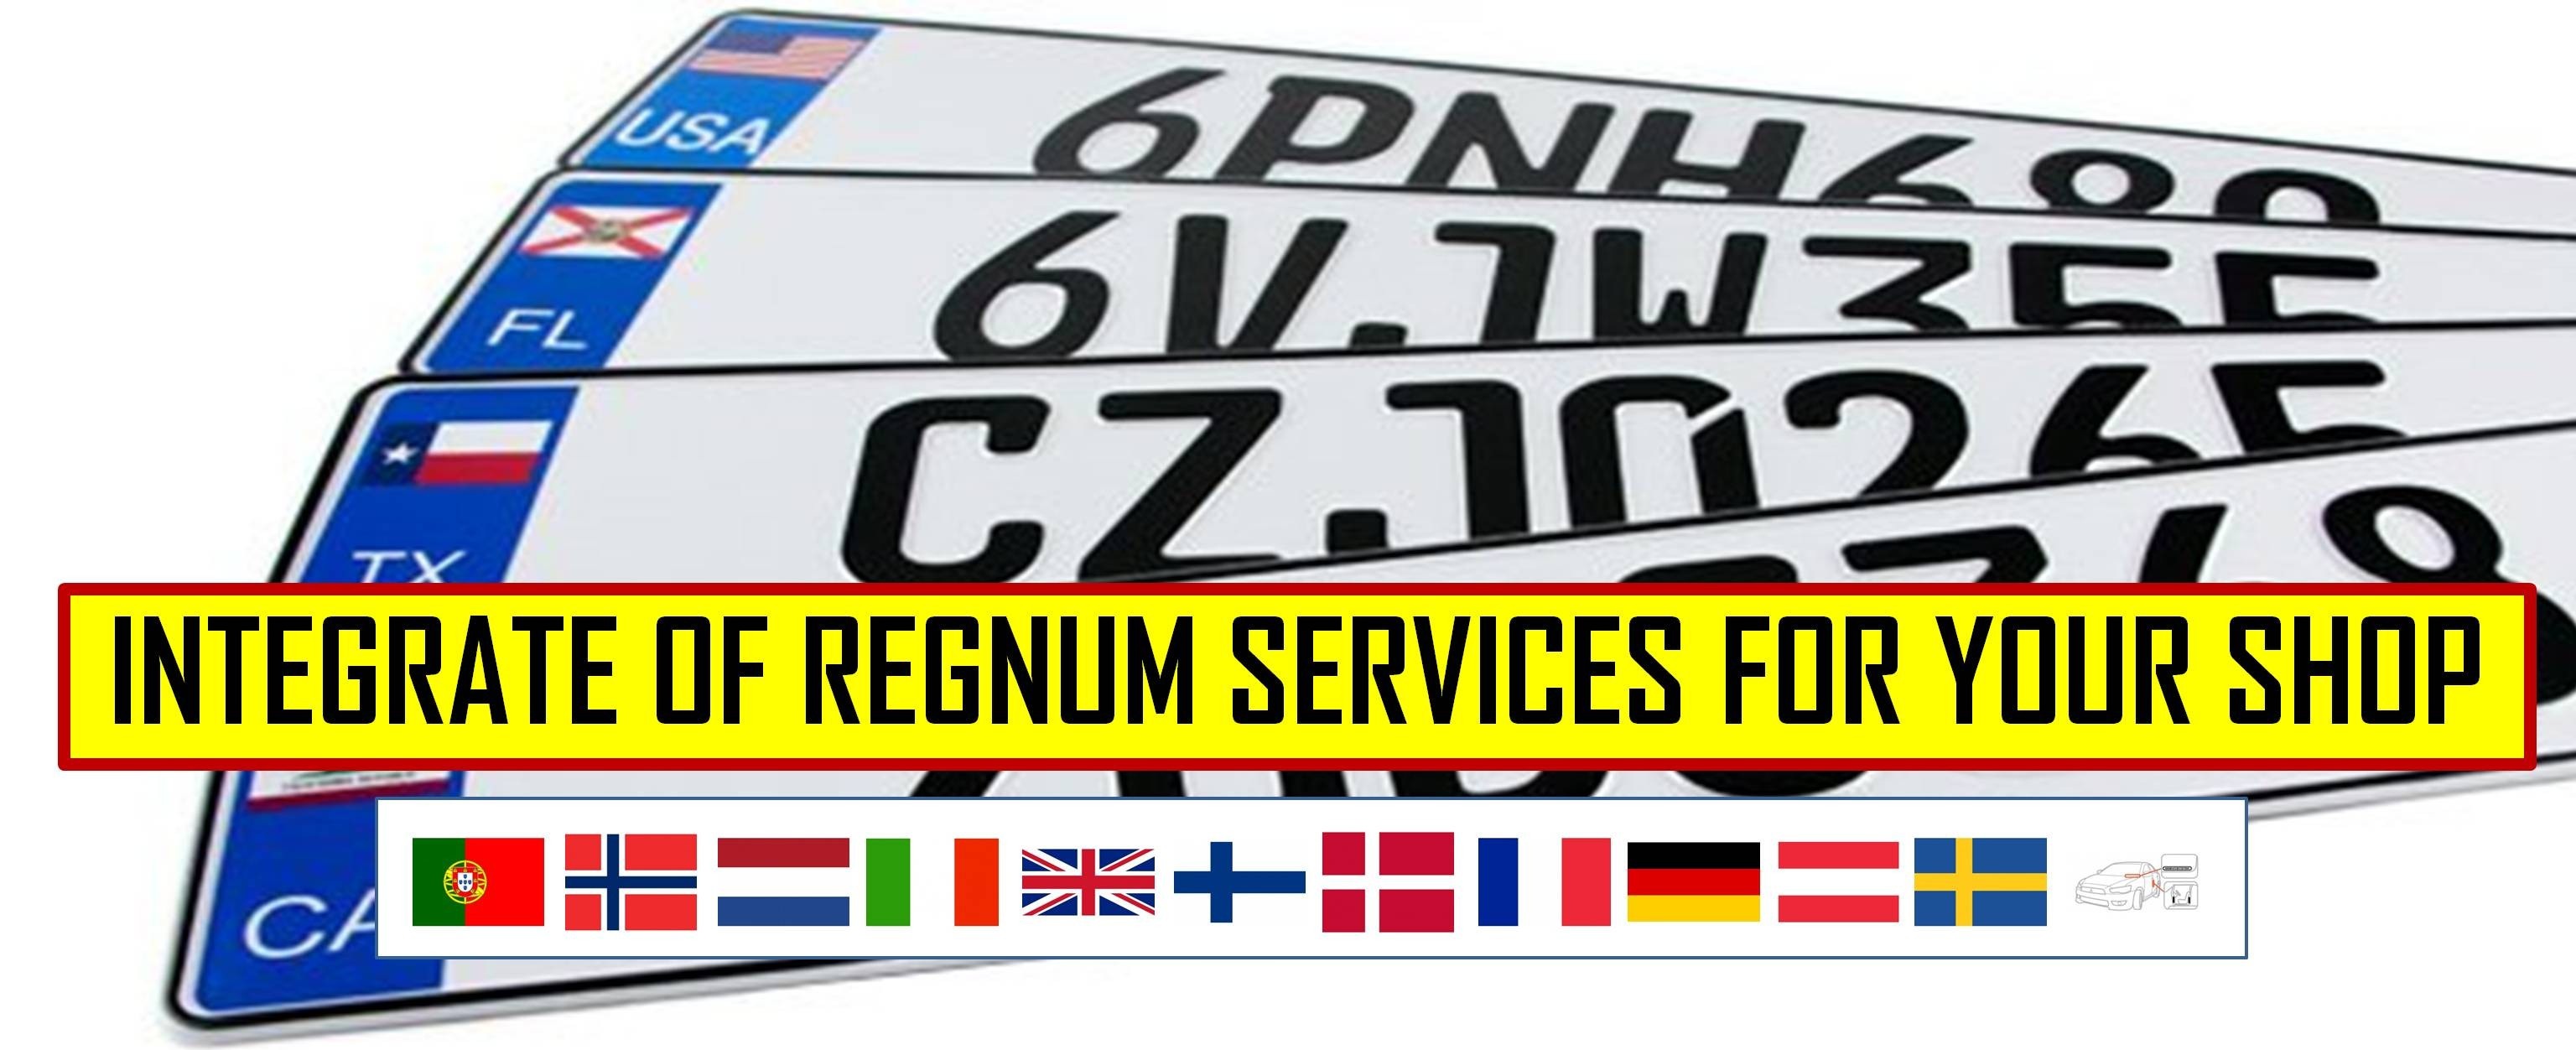 REGNUM [LICENSE PLATE] SERVICES FOR DIFFERENT COUNTRIES | INTEGRATE SERVICES